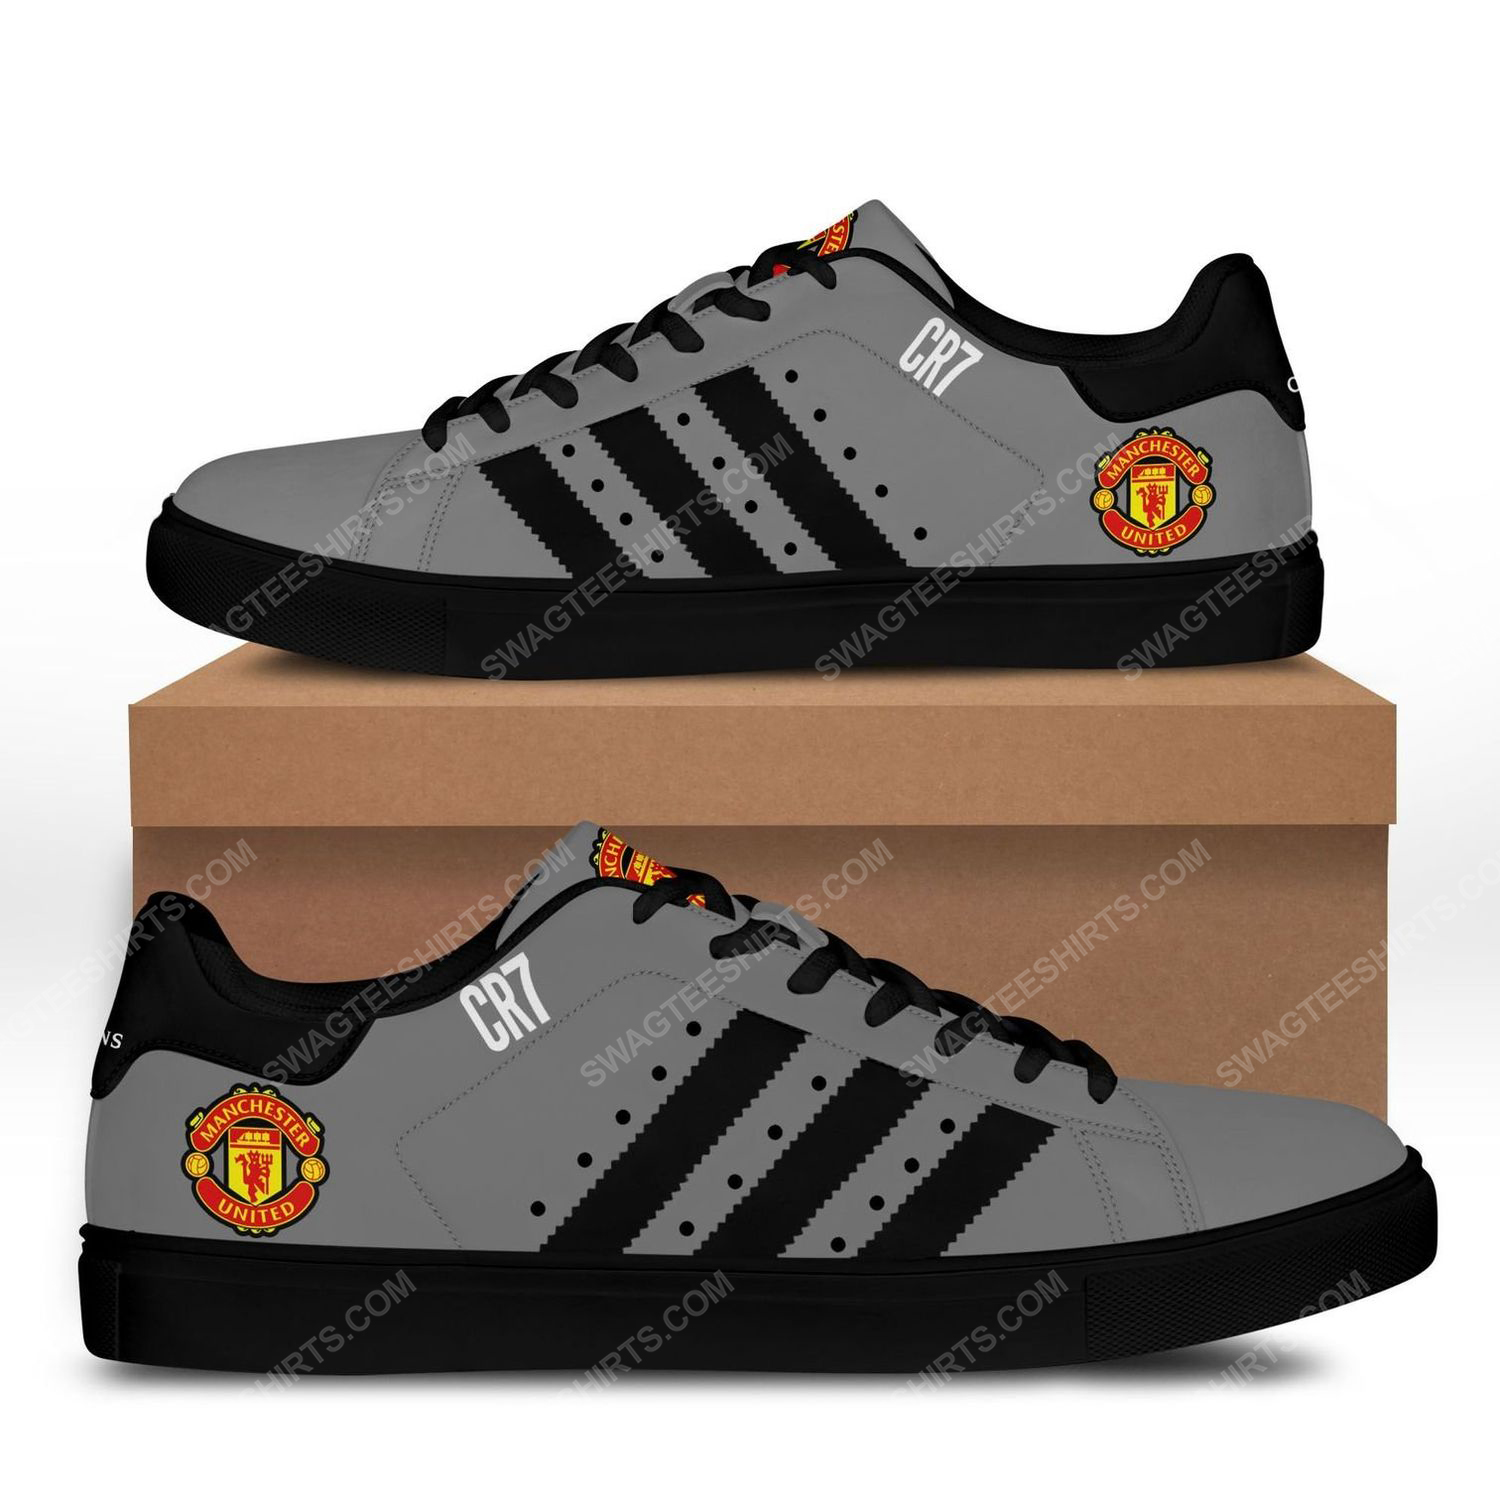 Manchester united football club stan smith shoes - black 1